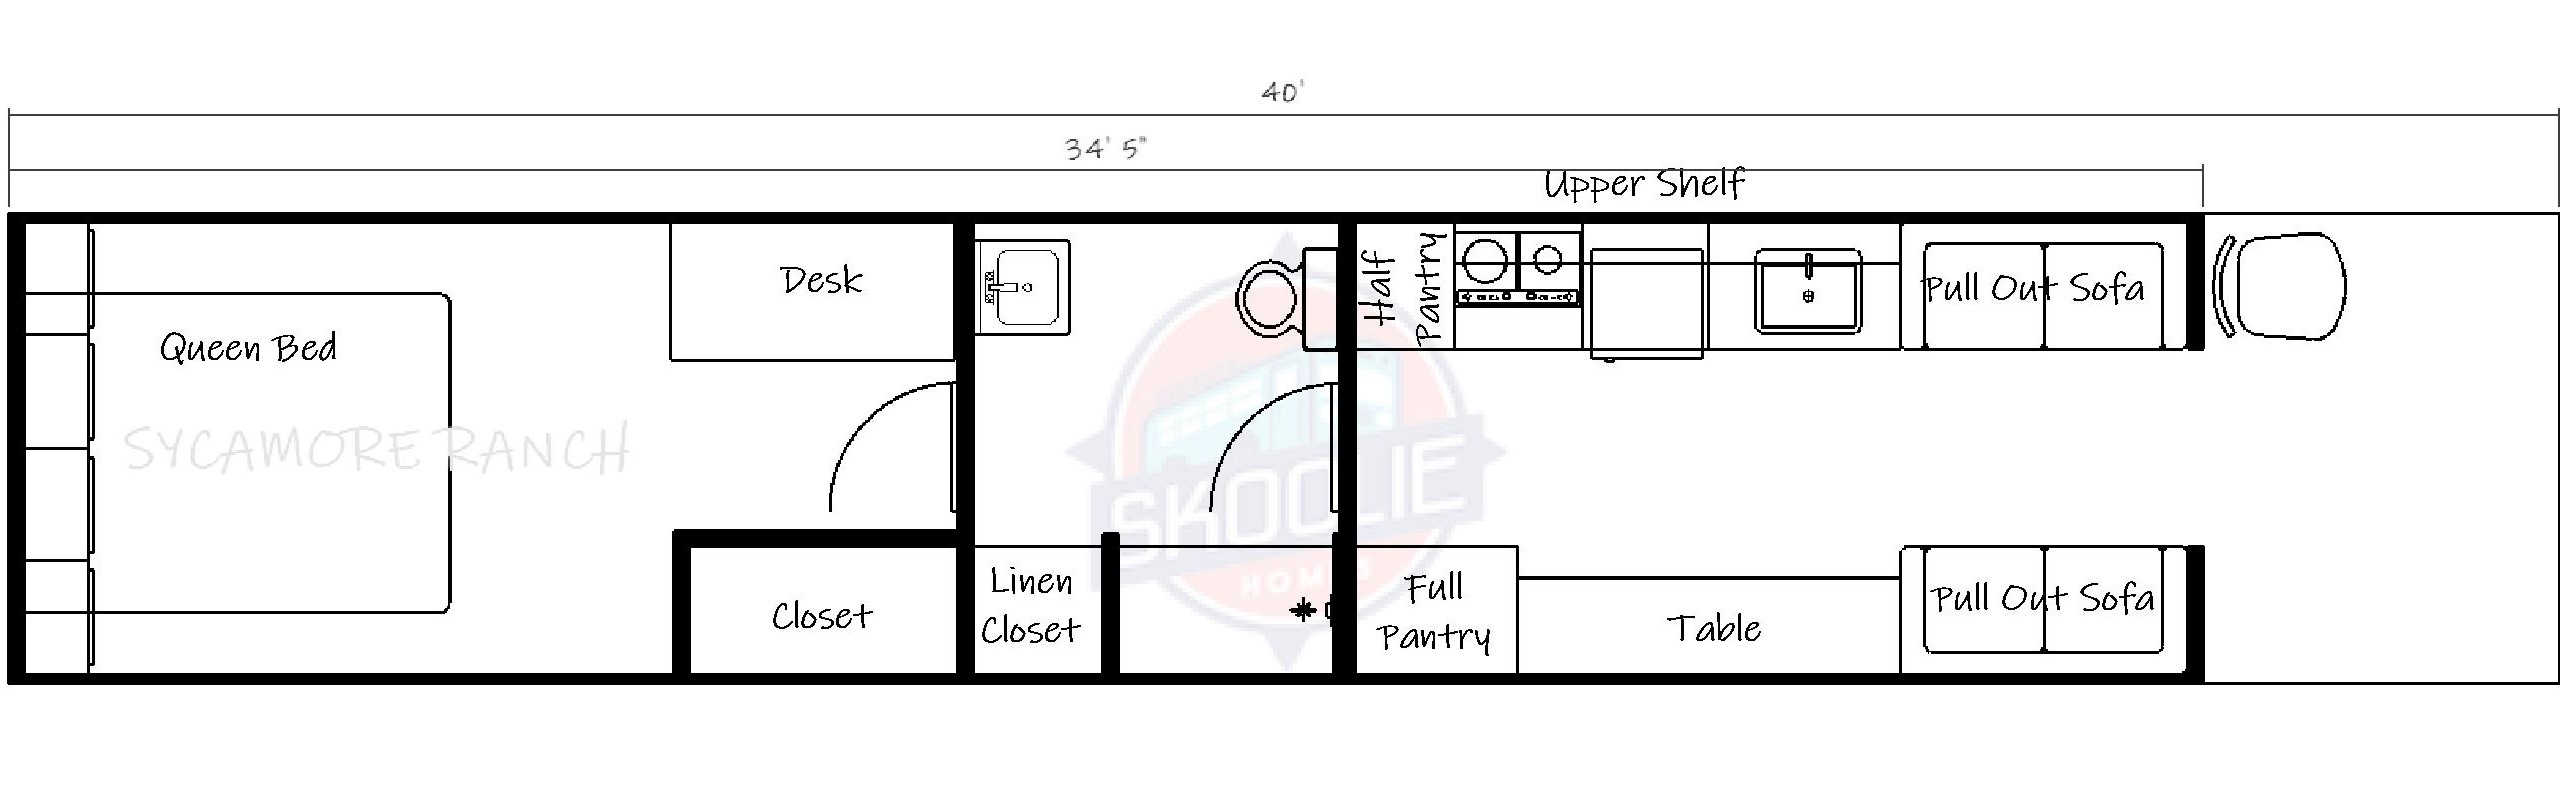 40 foot skoolie floor plan